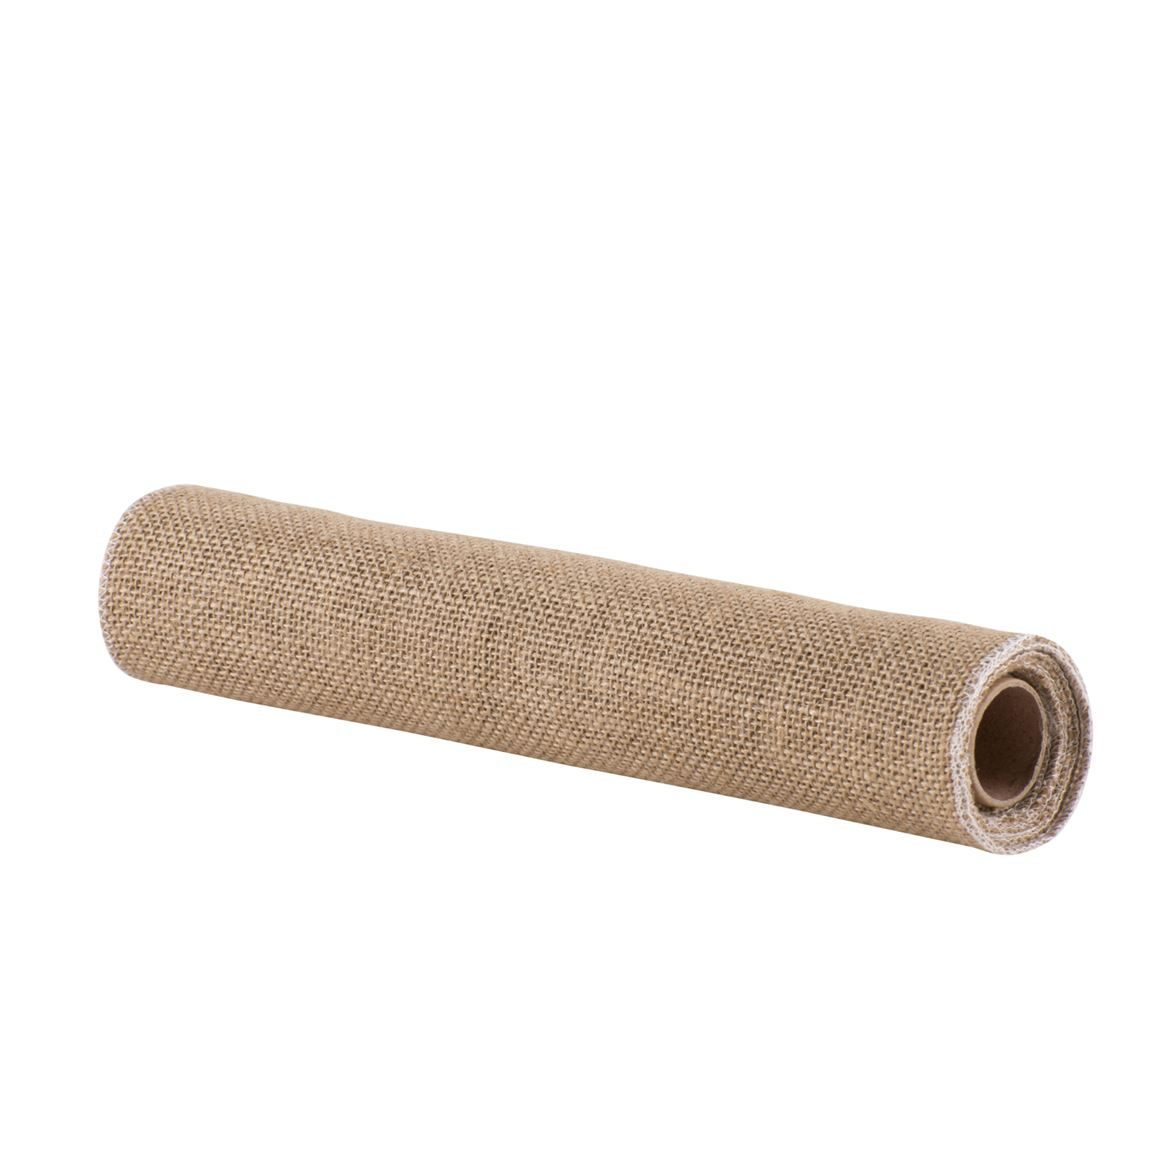 JUTE Chemin de table naturel Larg. 28 x Long. 150 cm_jute-chemin-de-table-naturel-larg--28-x-long--150-cm